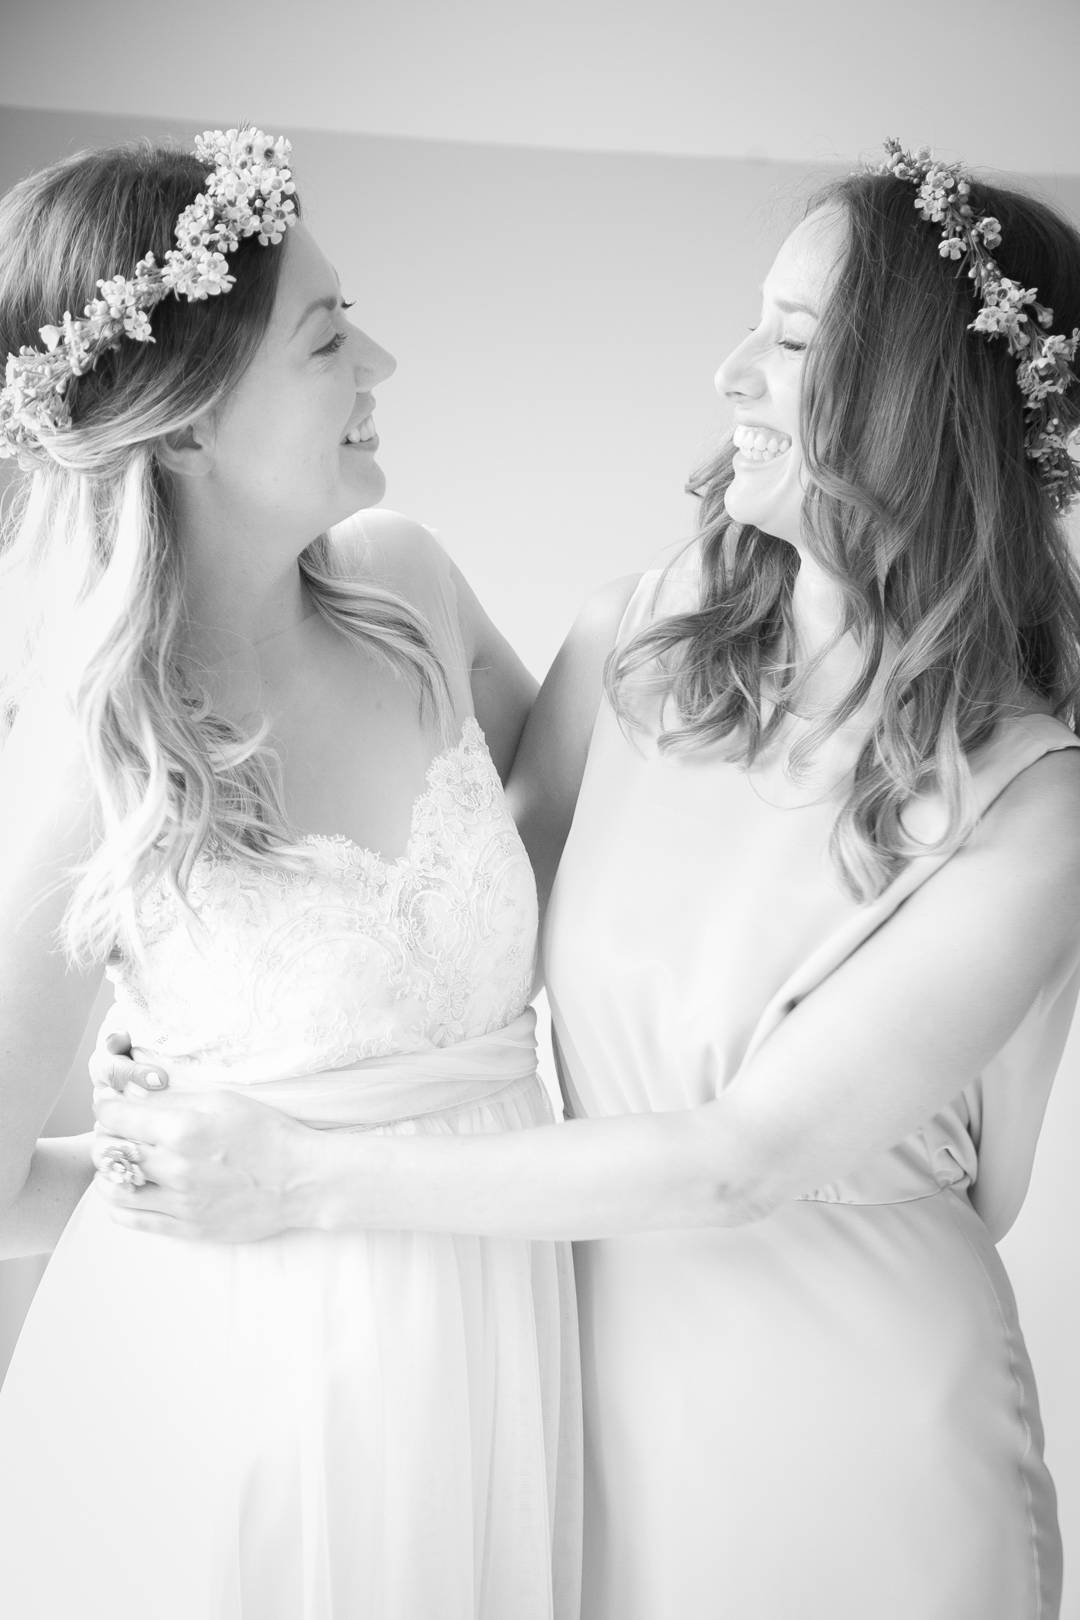 boho-bride-and-bridesmaid-sara-and-tims-festival-wedding-joe-buford-photography